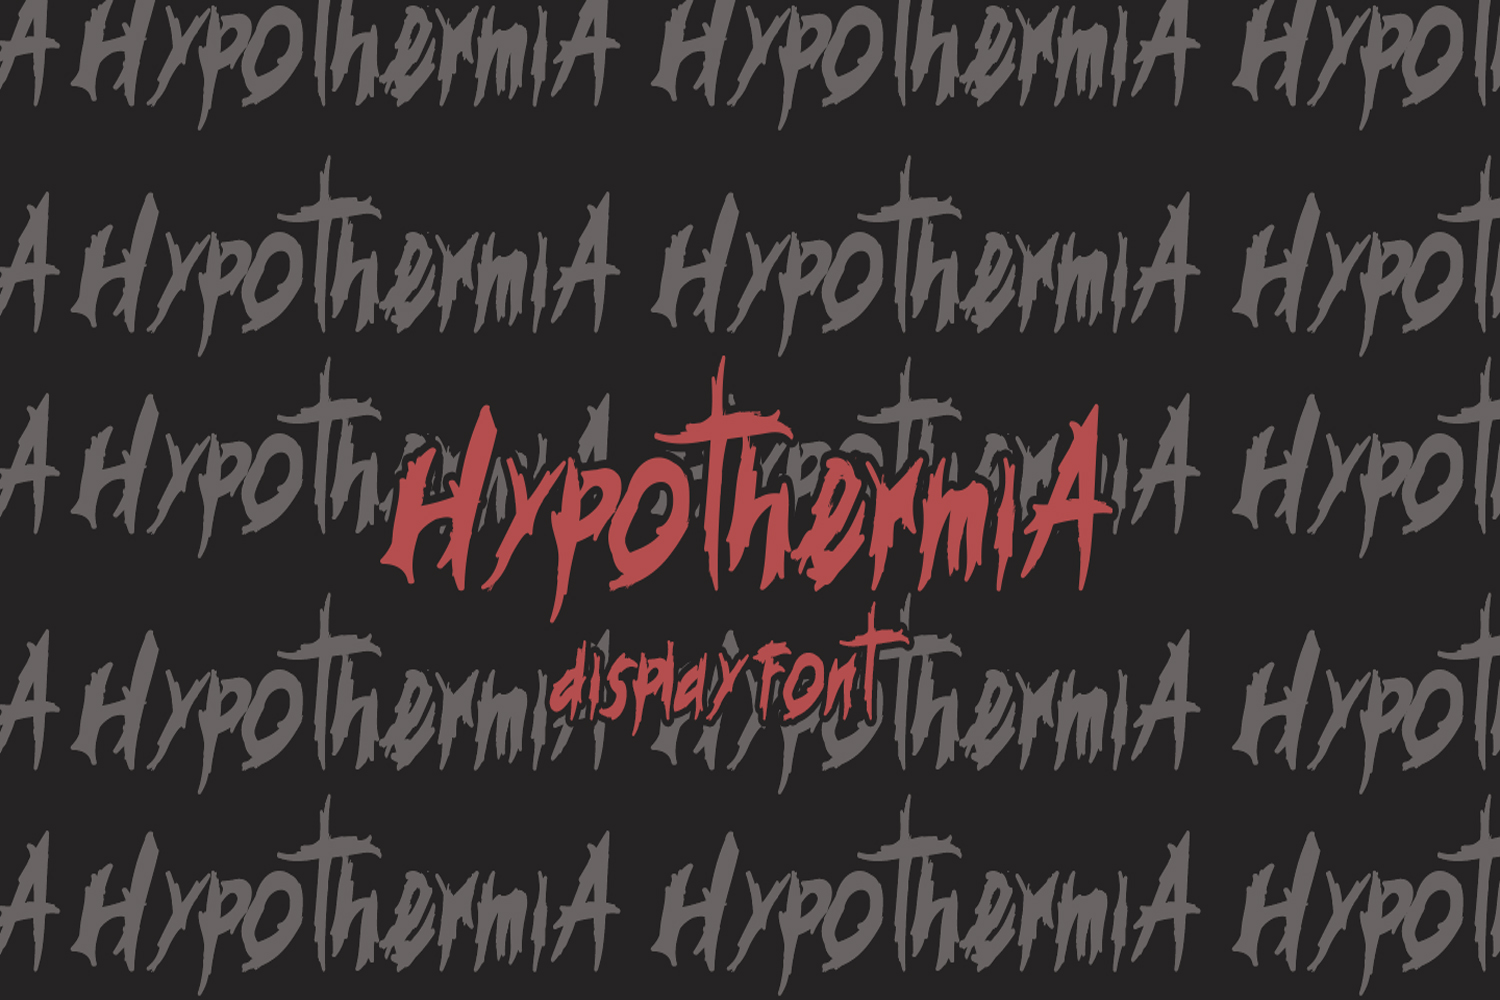 Hypotermia Display Font example image 2